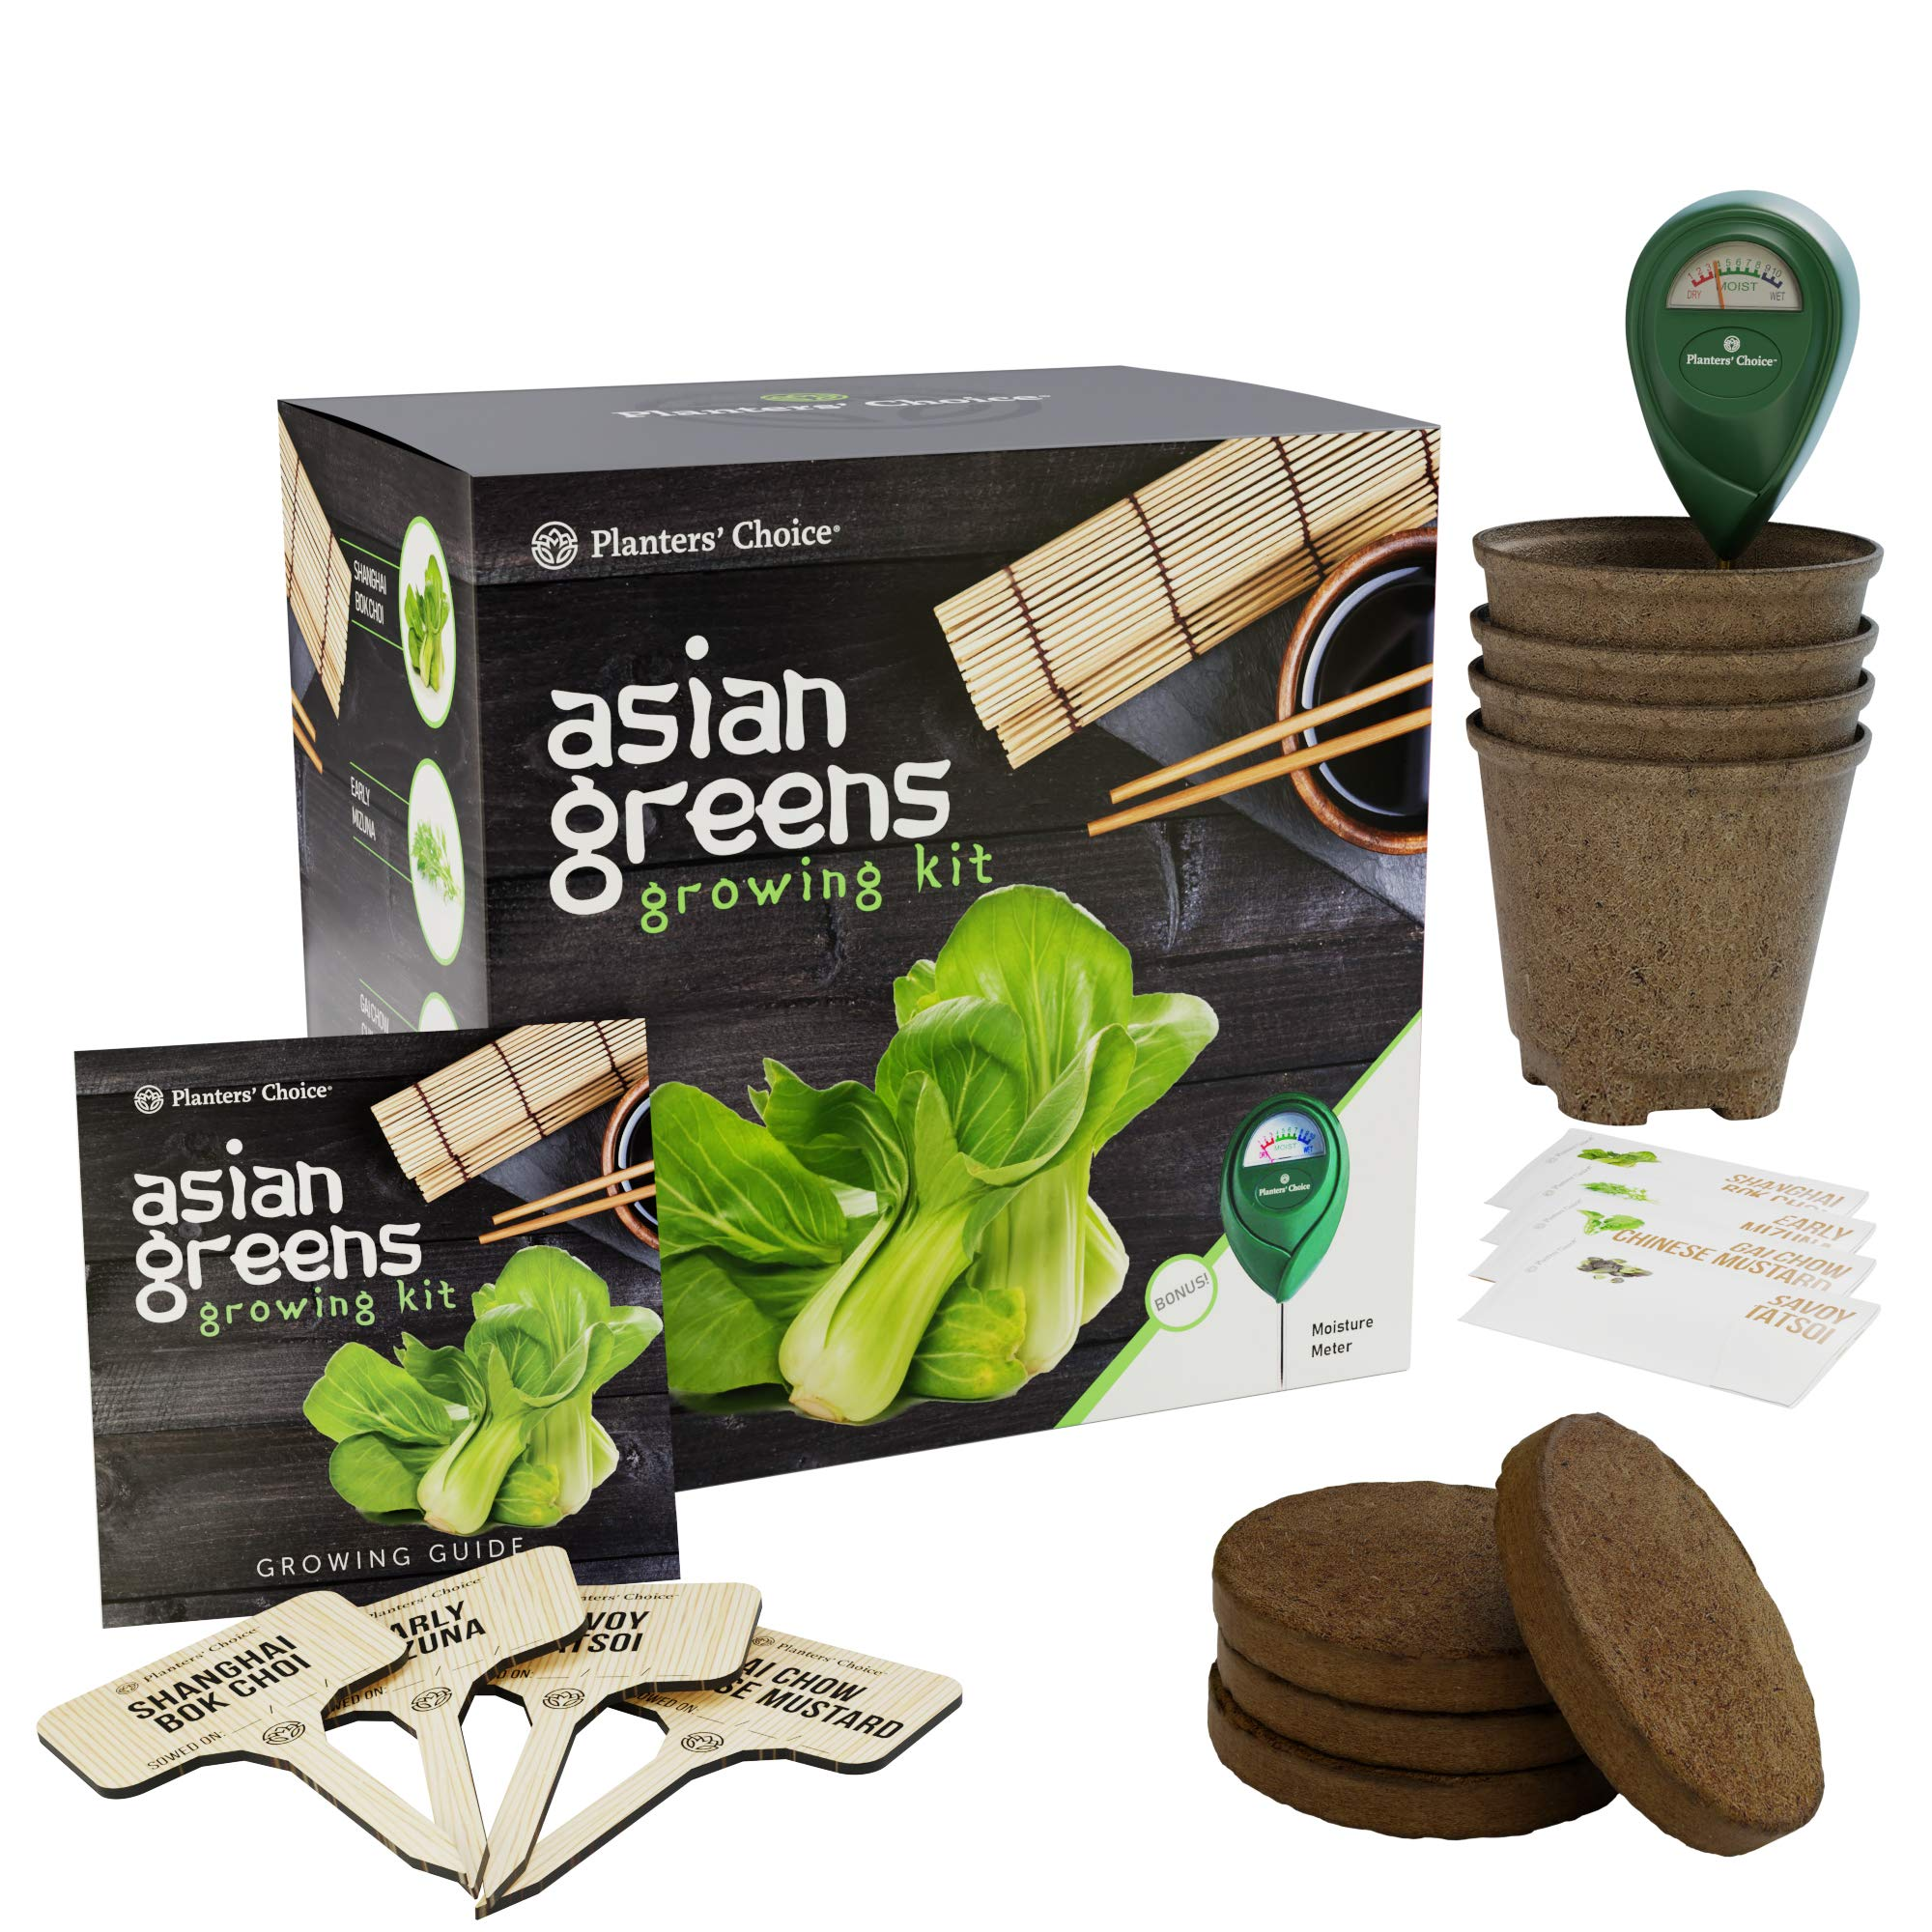 Asian Greens Growing Kit - Everything Included to Easily Grow 4 Traditional Asian Greens from Seed + Moisture Meter: Bok Choi, Mizuna, GAI Chow, Savoy Tatsoi by Planters' Choice (Image #7)